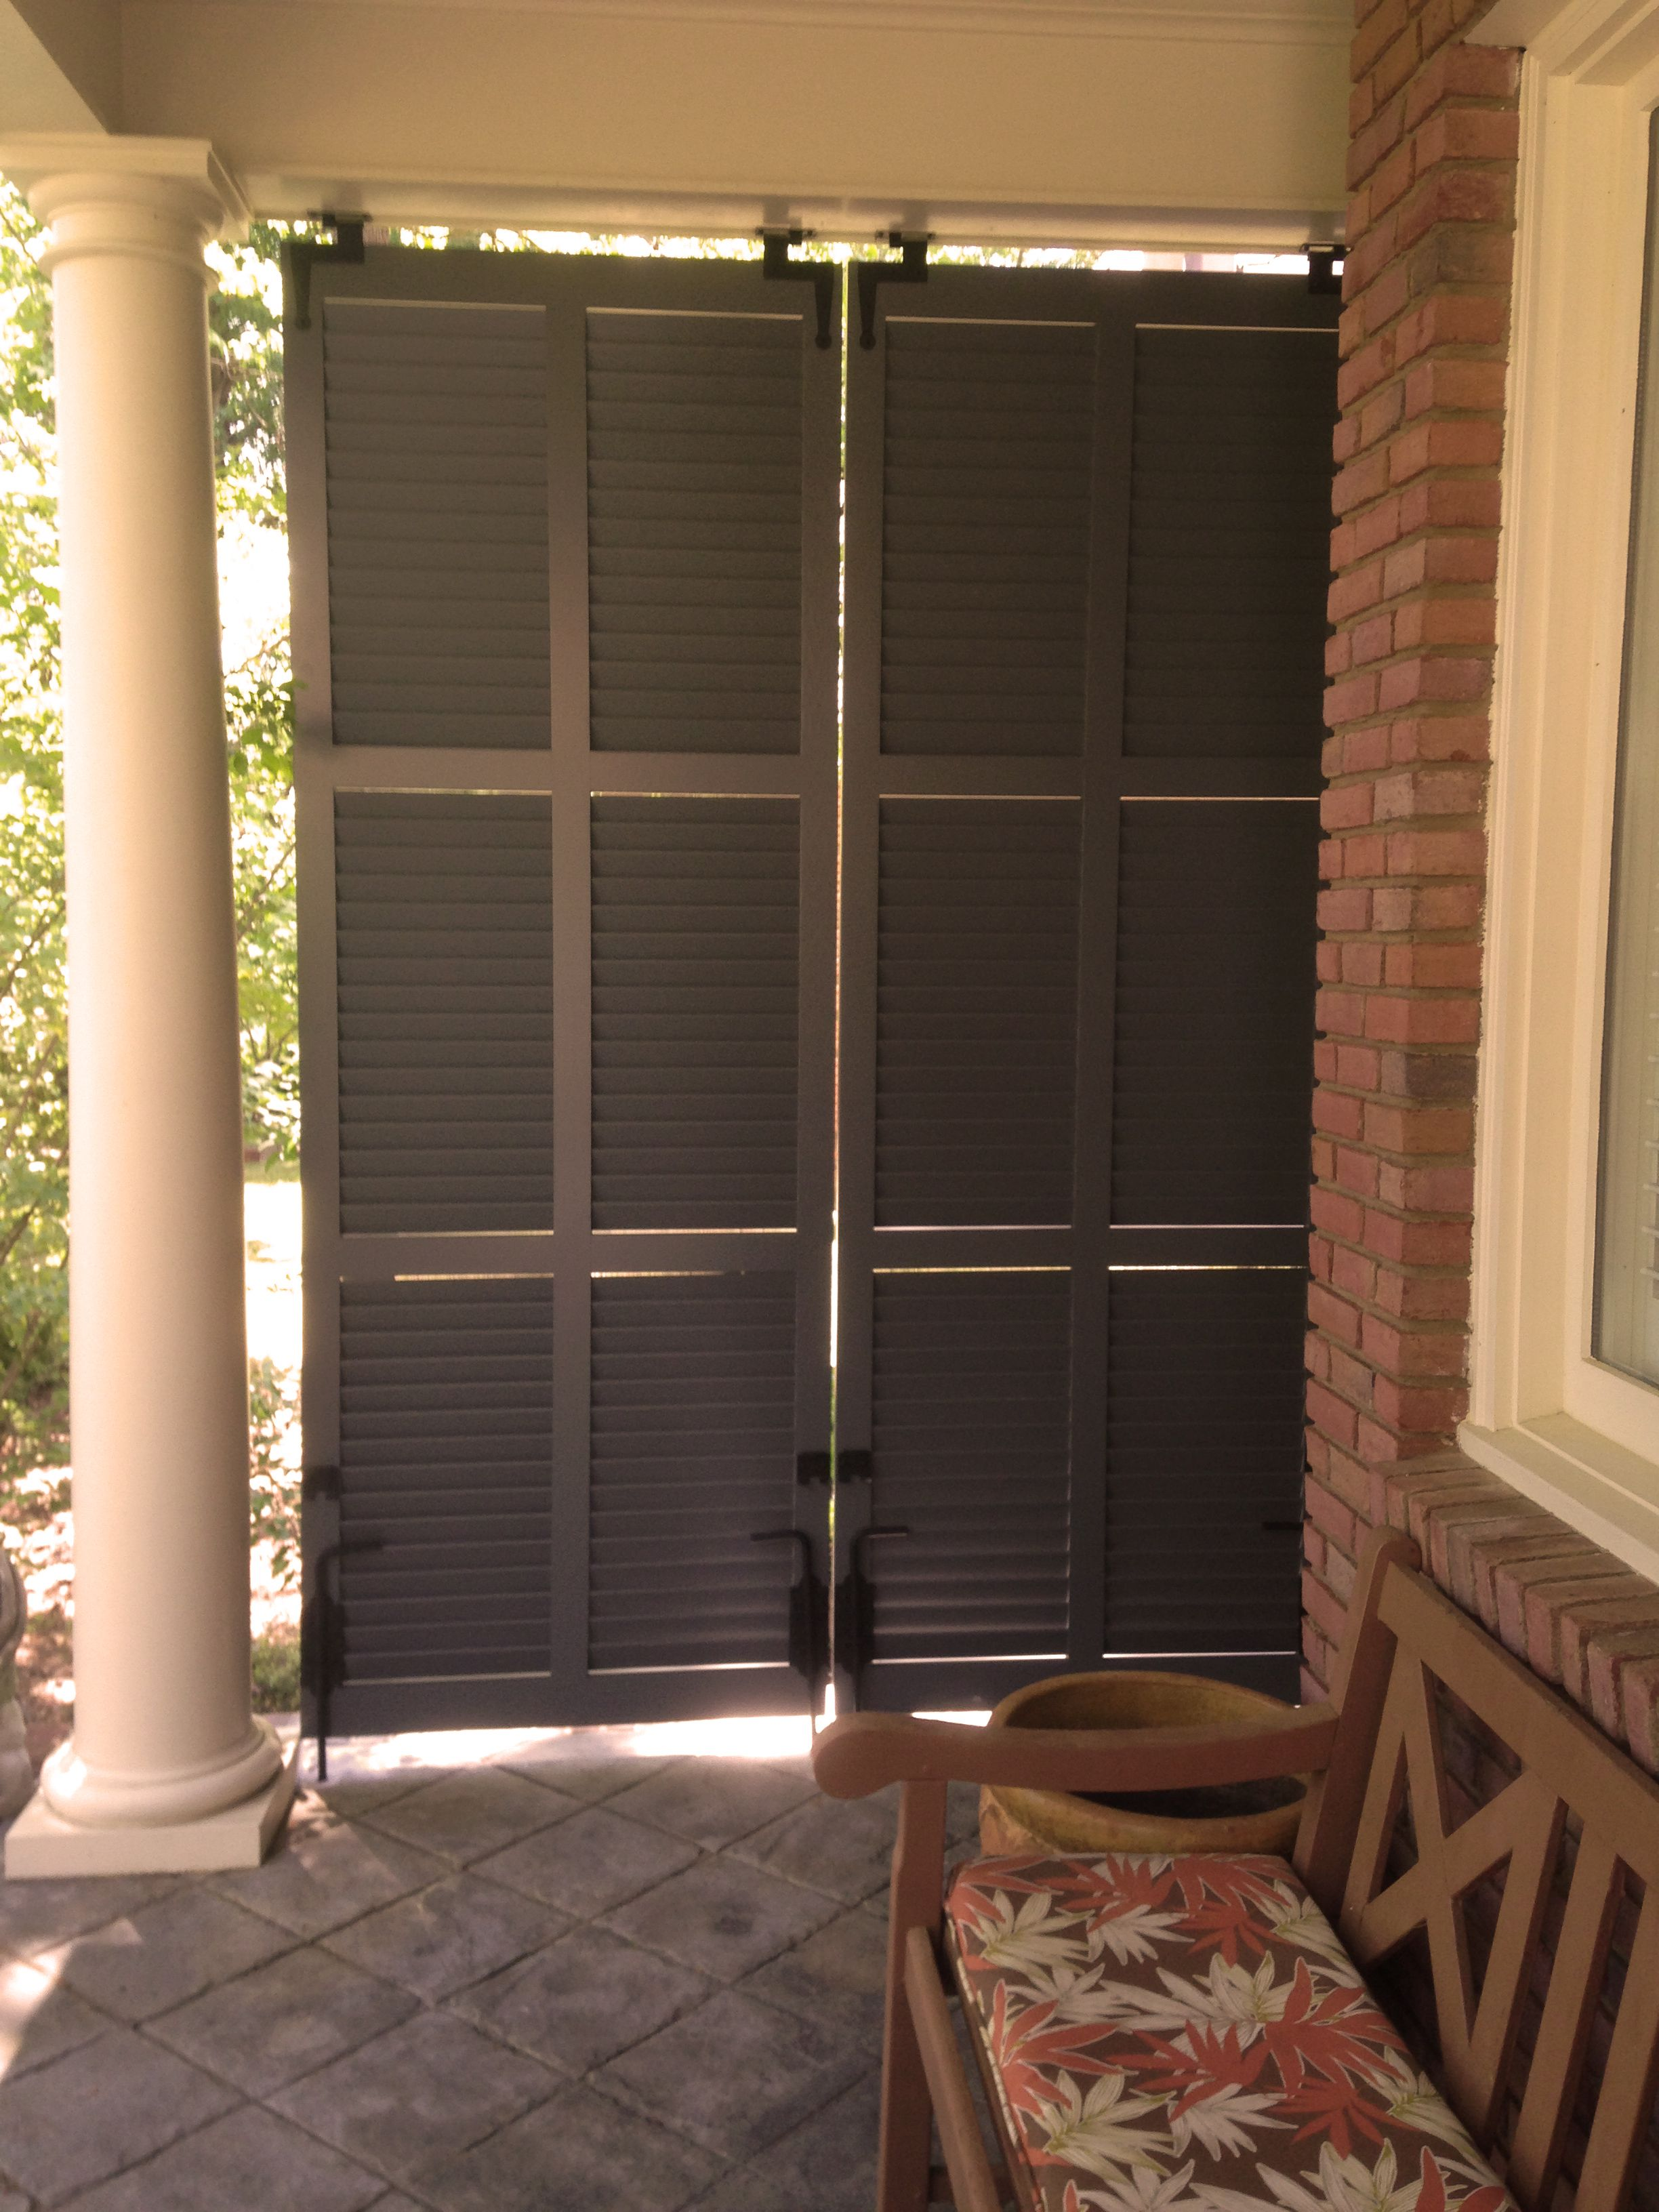 exterior bahama shutter interior exterior shutters pinterest s paration pergola et voisin. Black Bedroom Furniture Sets. Home Design Ideas